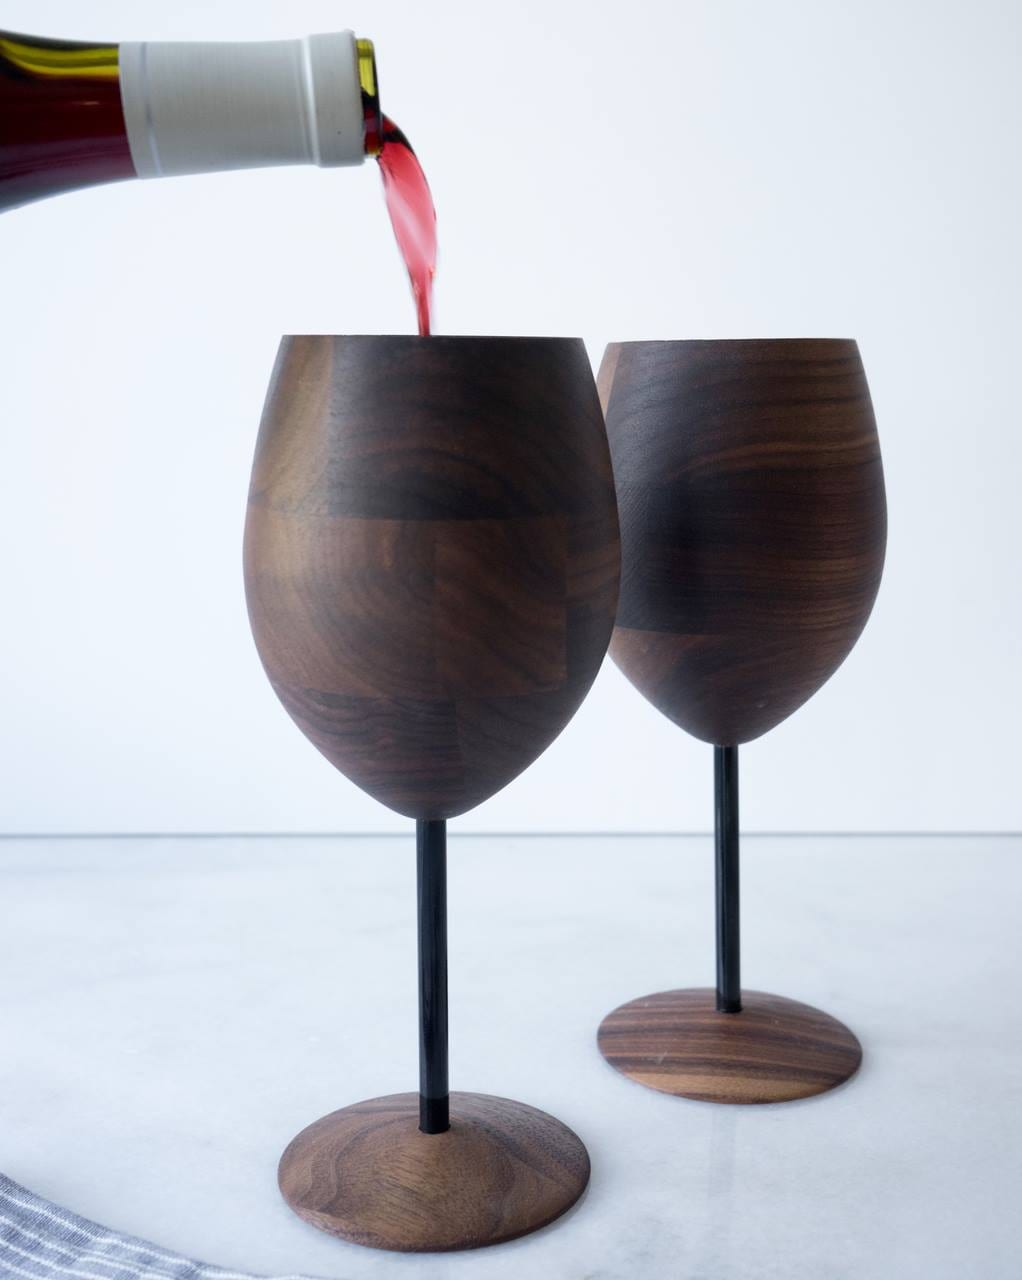 image of wooden wine glasses